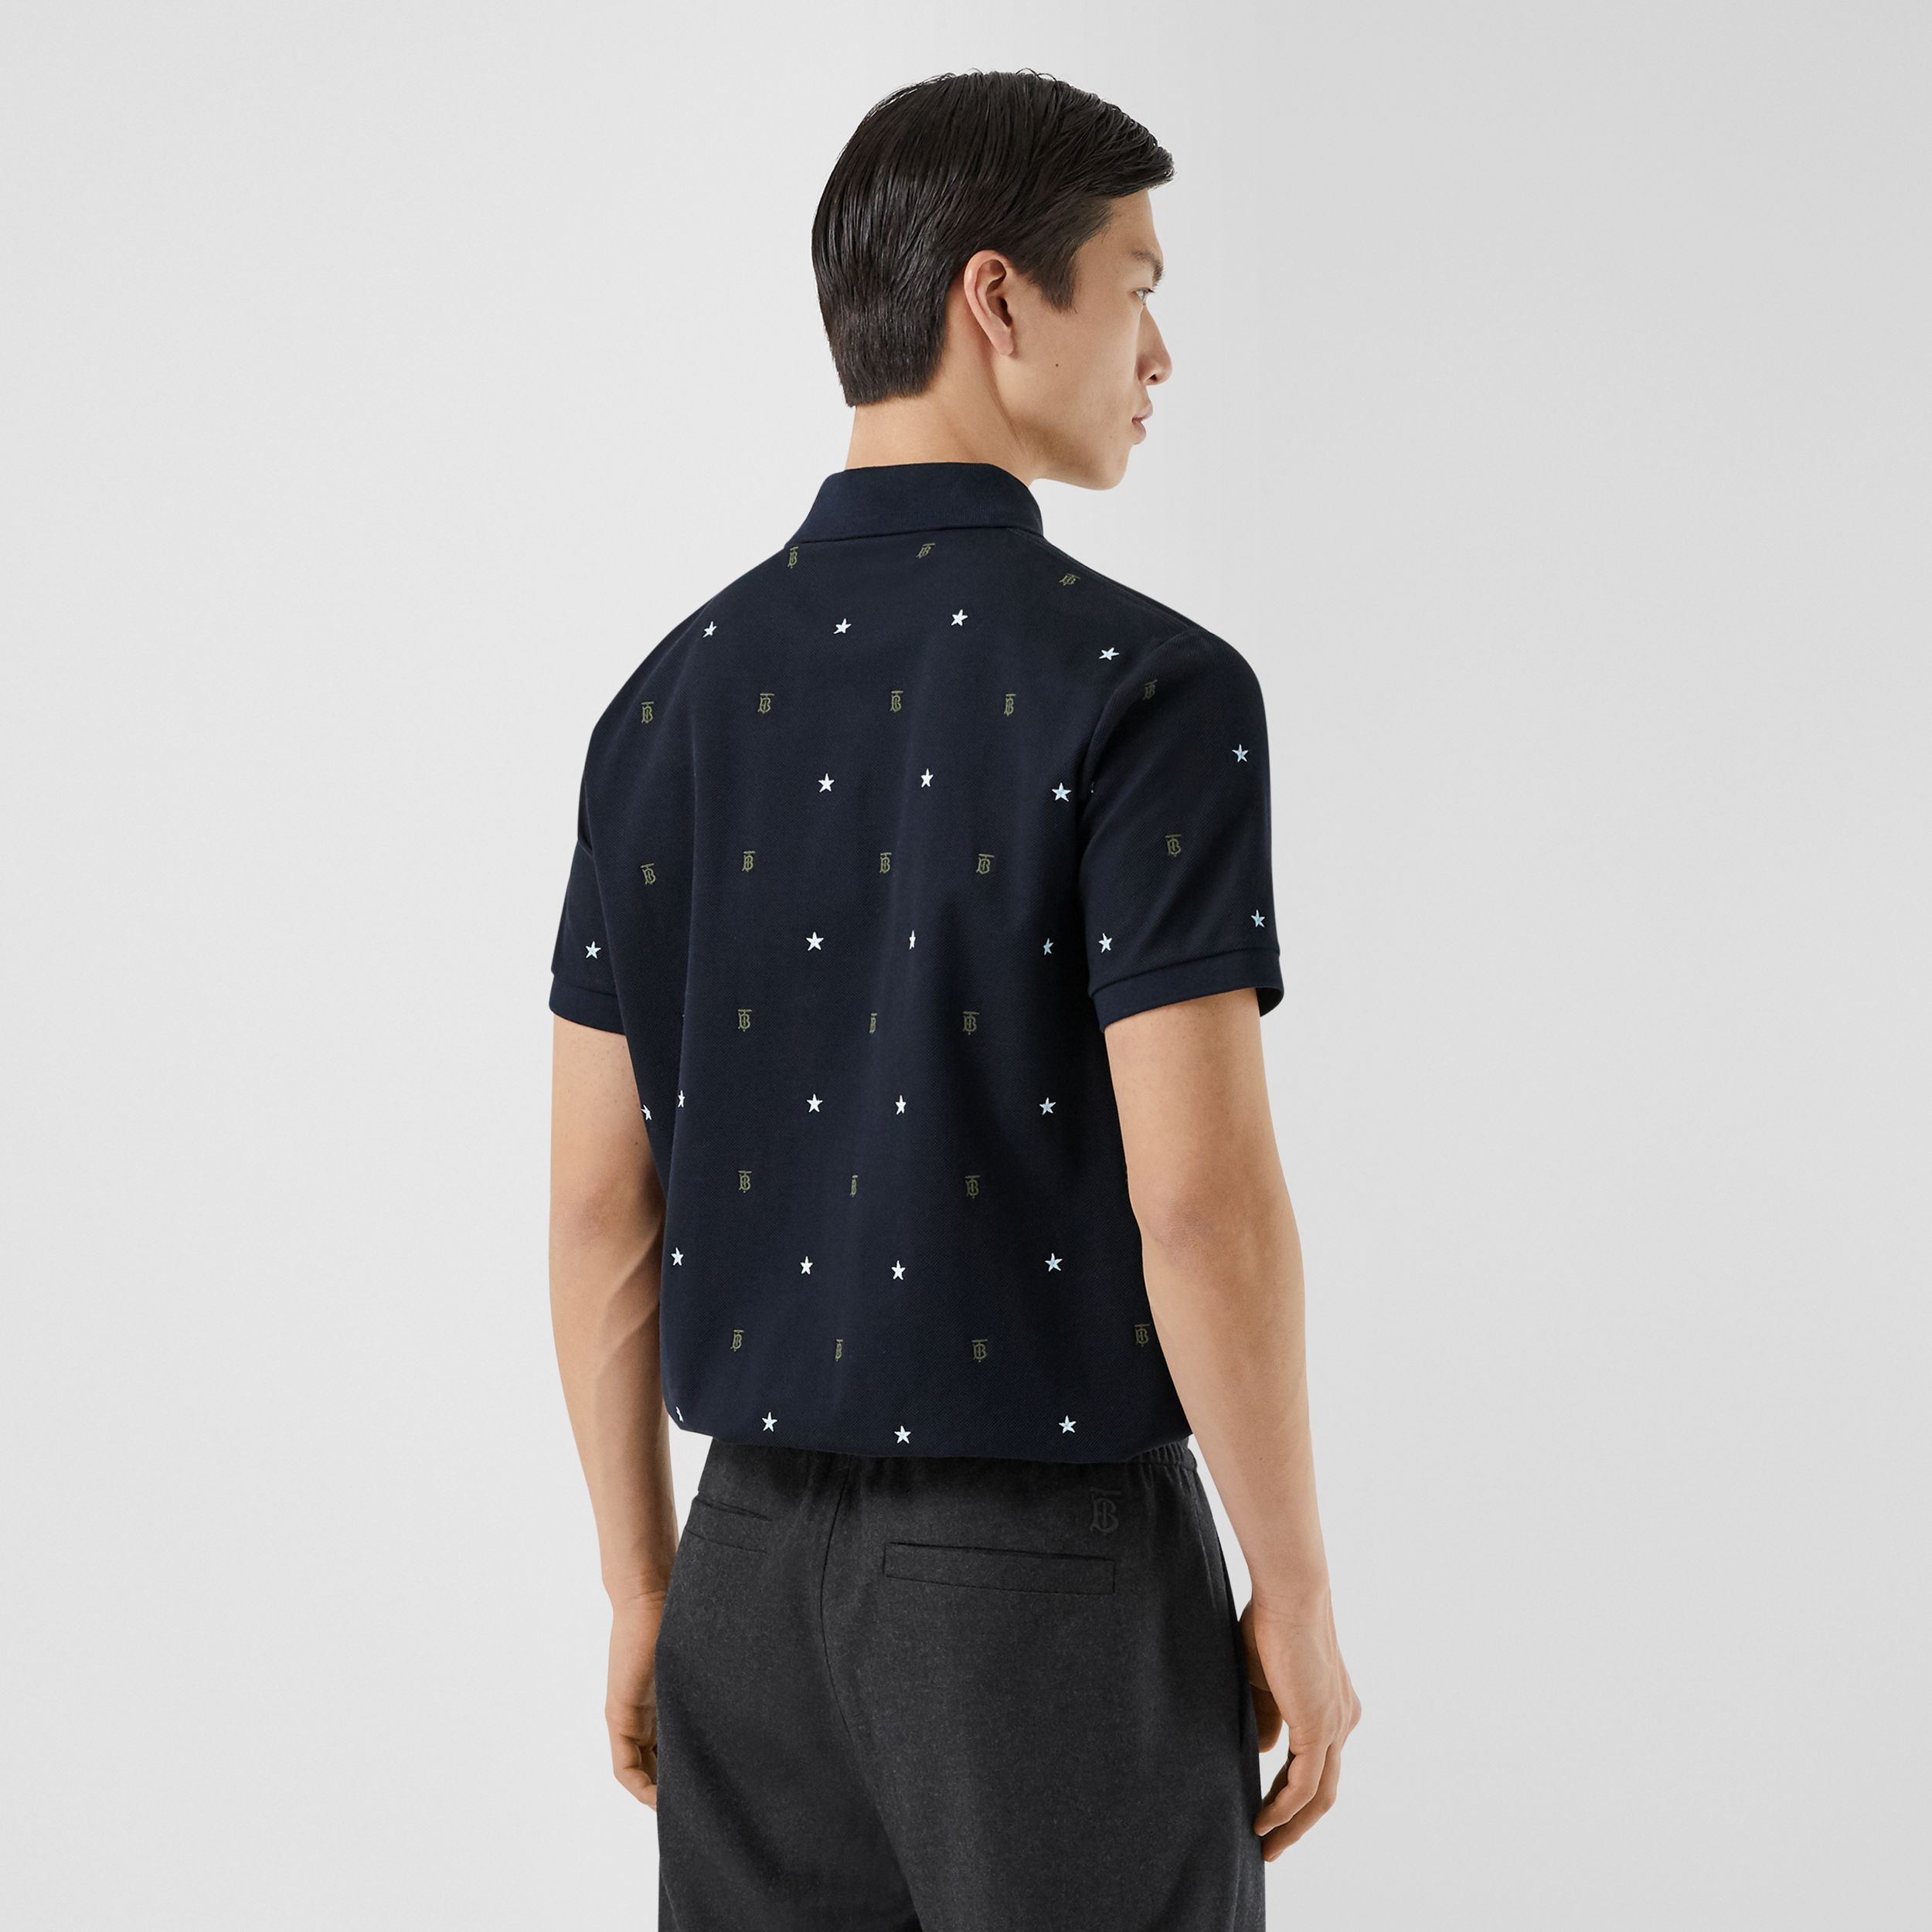 Star and Monogram Motif Cotton Piqué Polo Shirt in Navy - Men | Burberry - 3